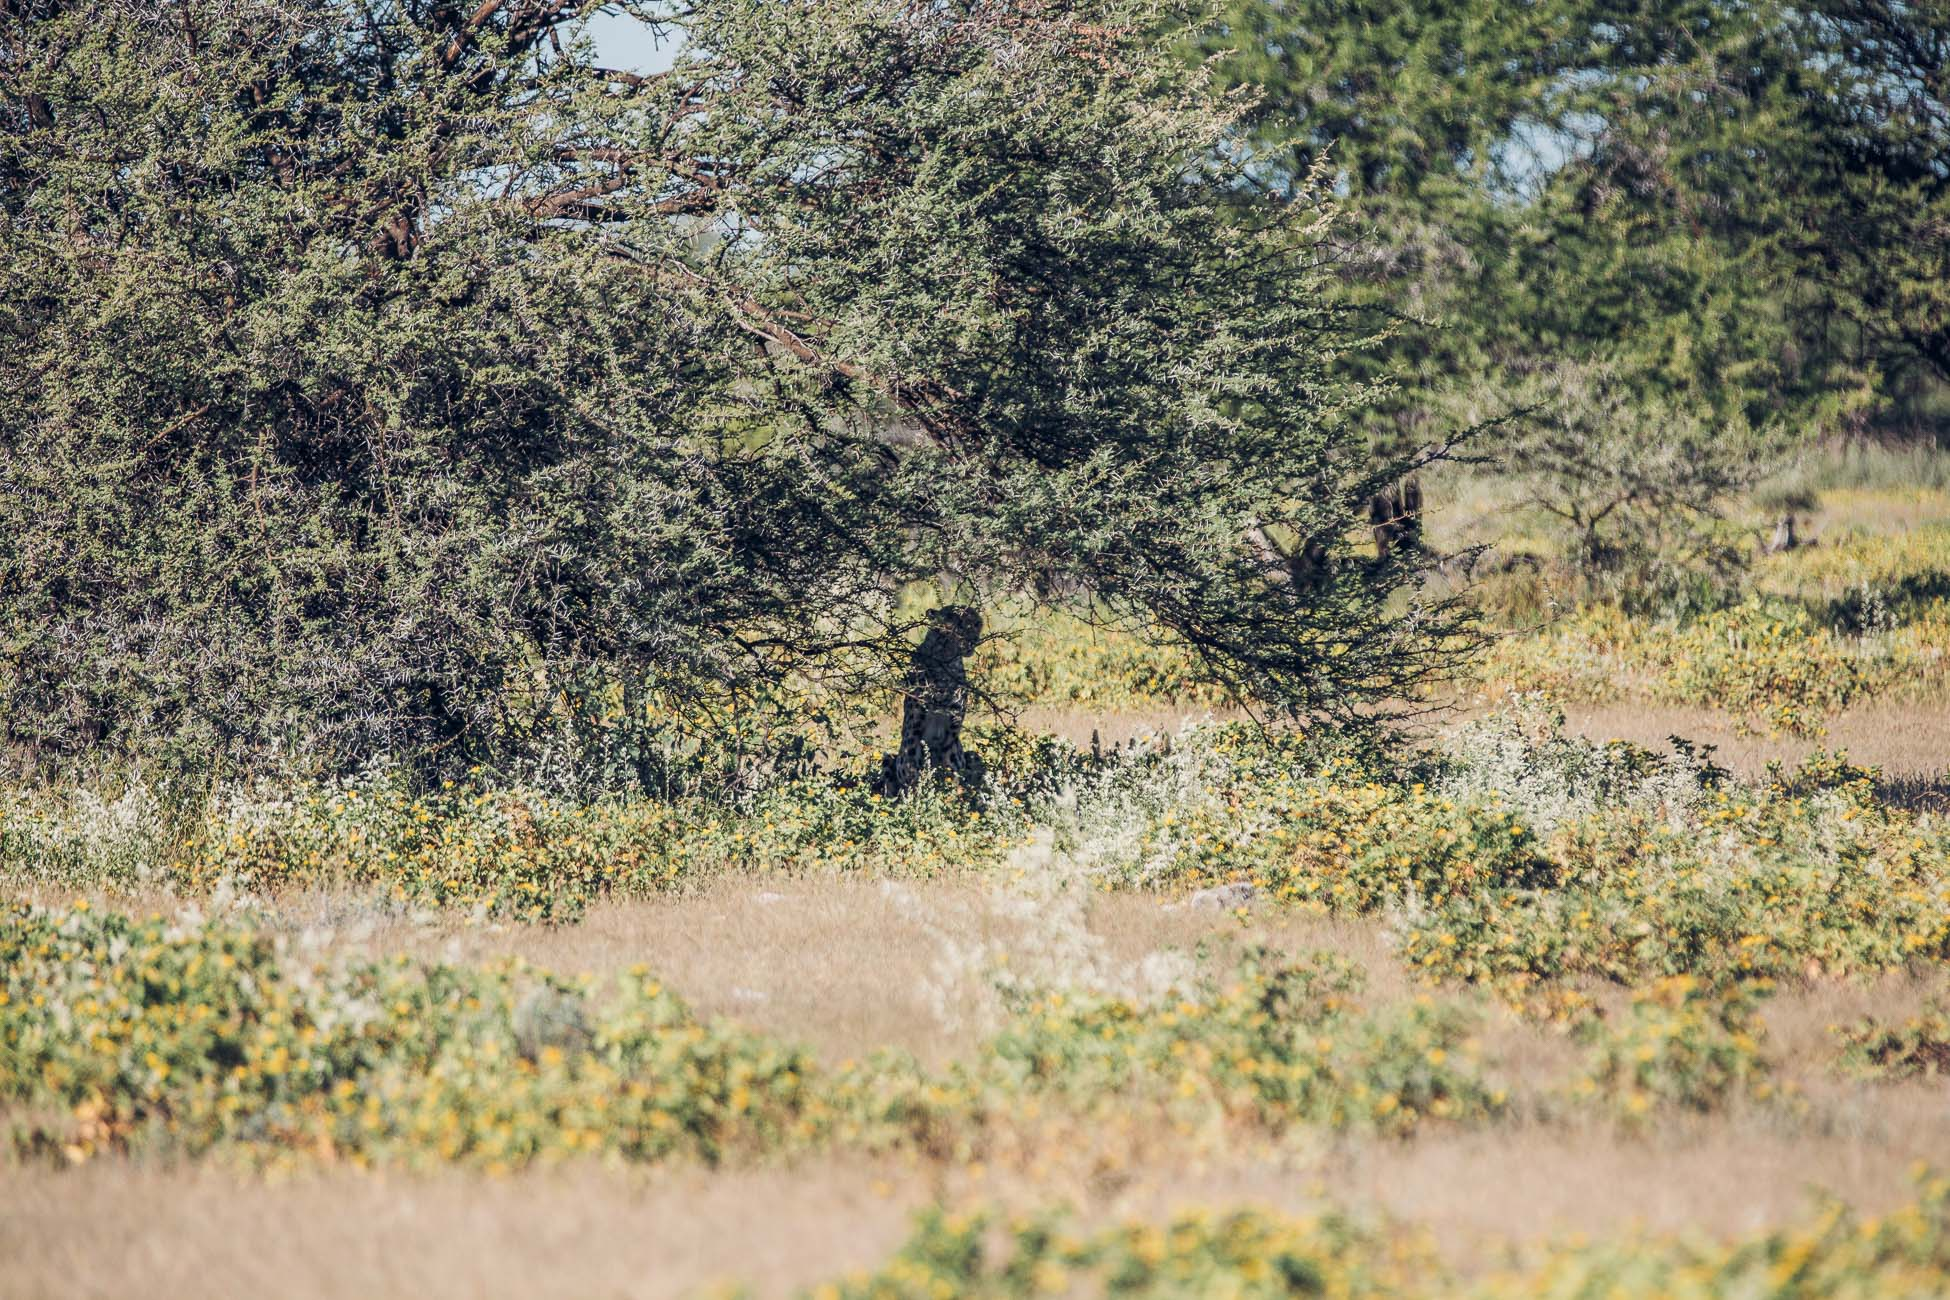 A cheetah at Etosha National Park